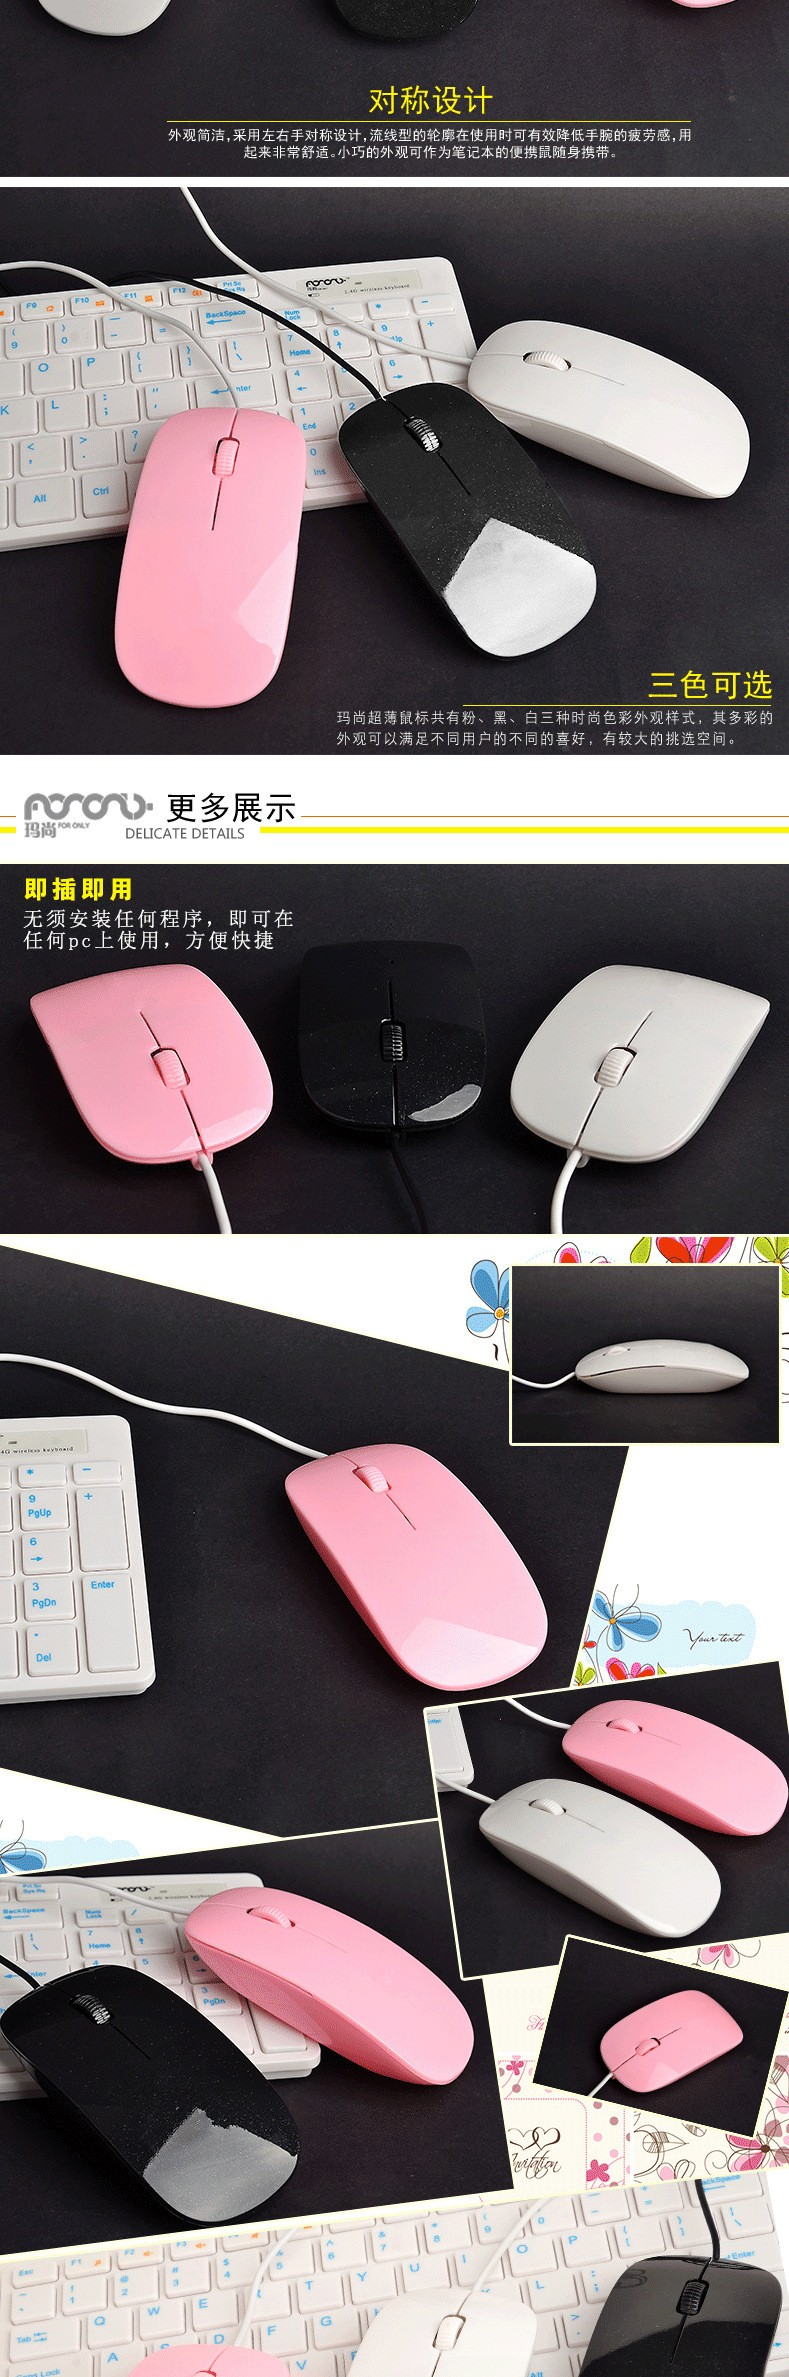 thin mouse (3)